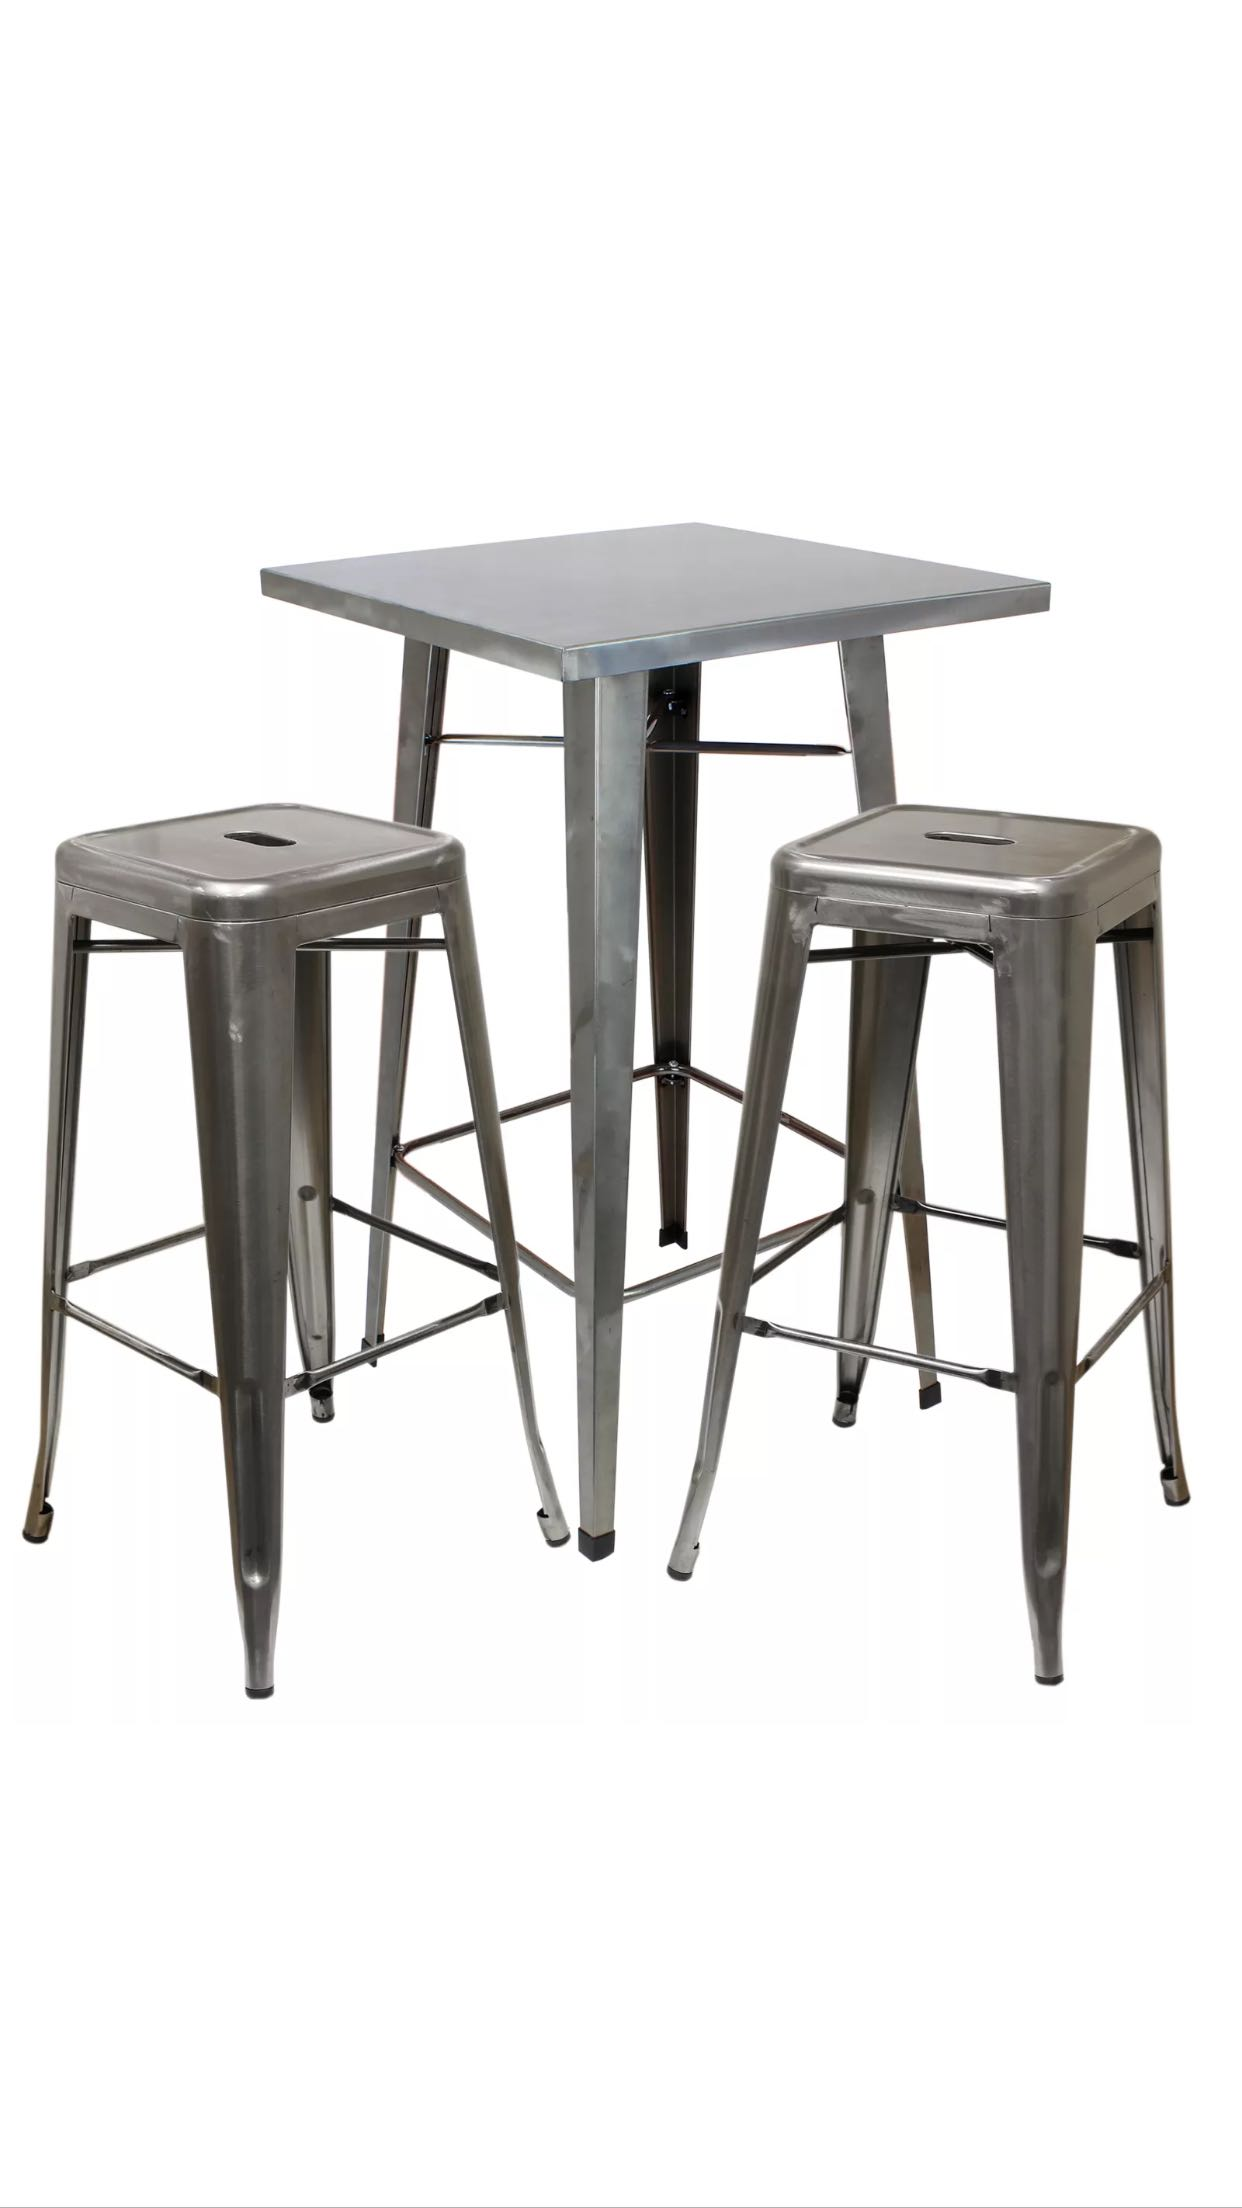 Kitchen Bar Stools And Table For Sale In Uk View 83 Ads